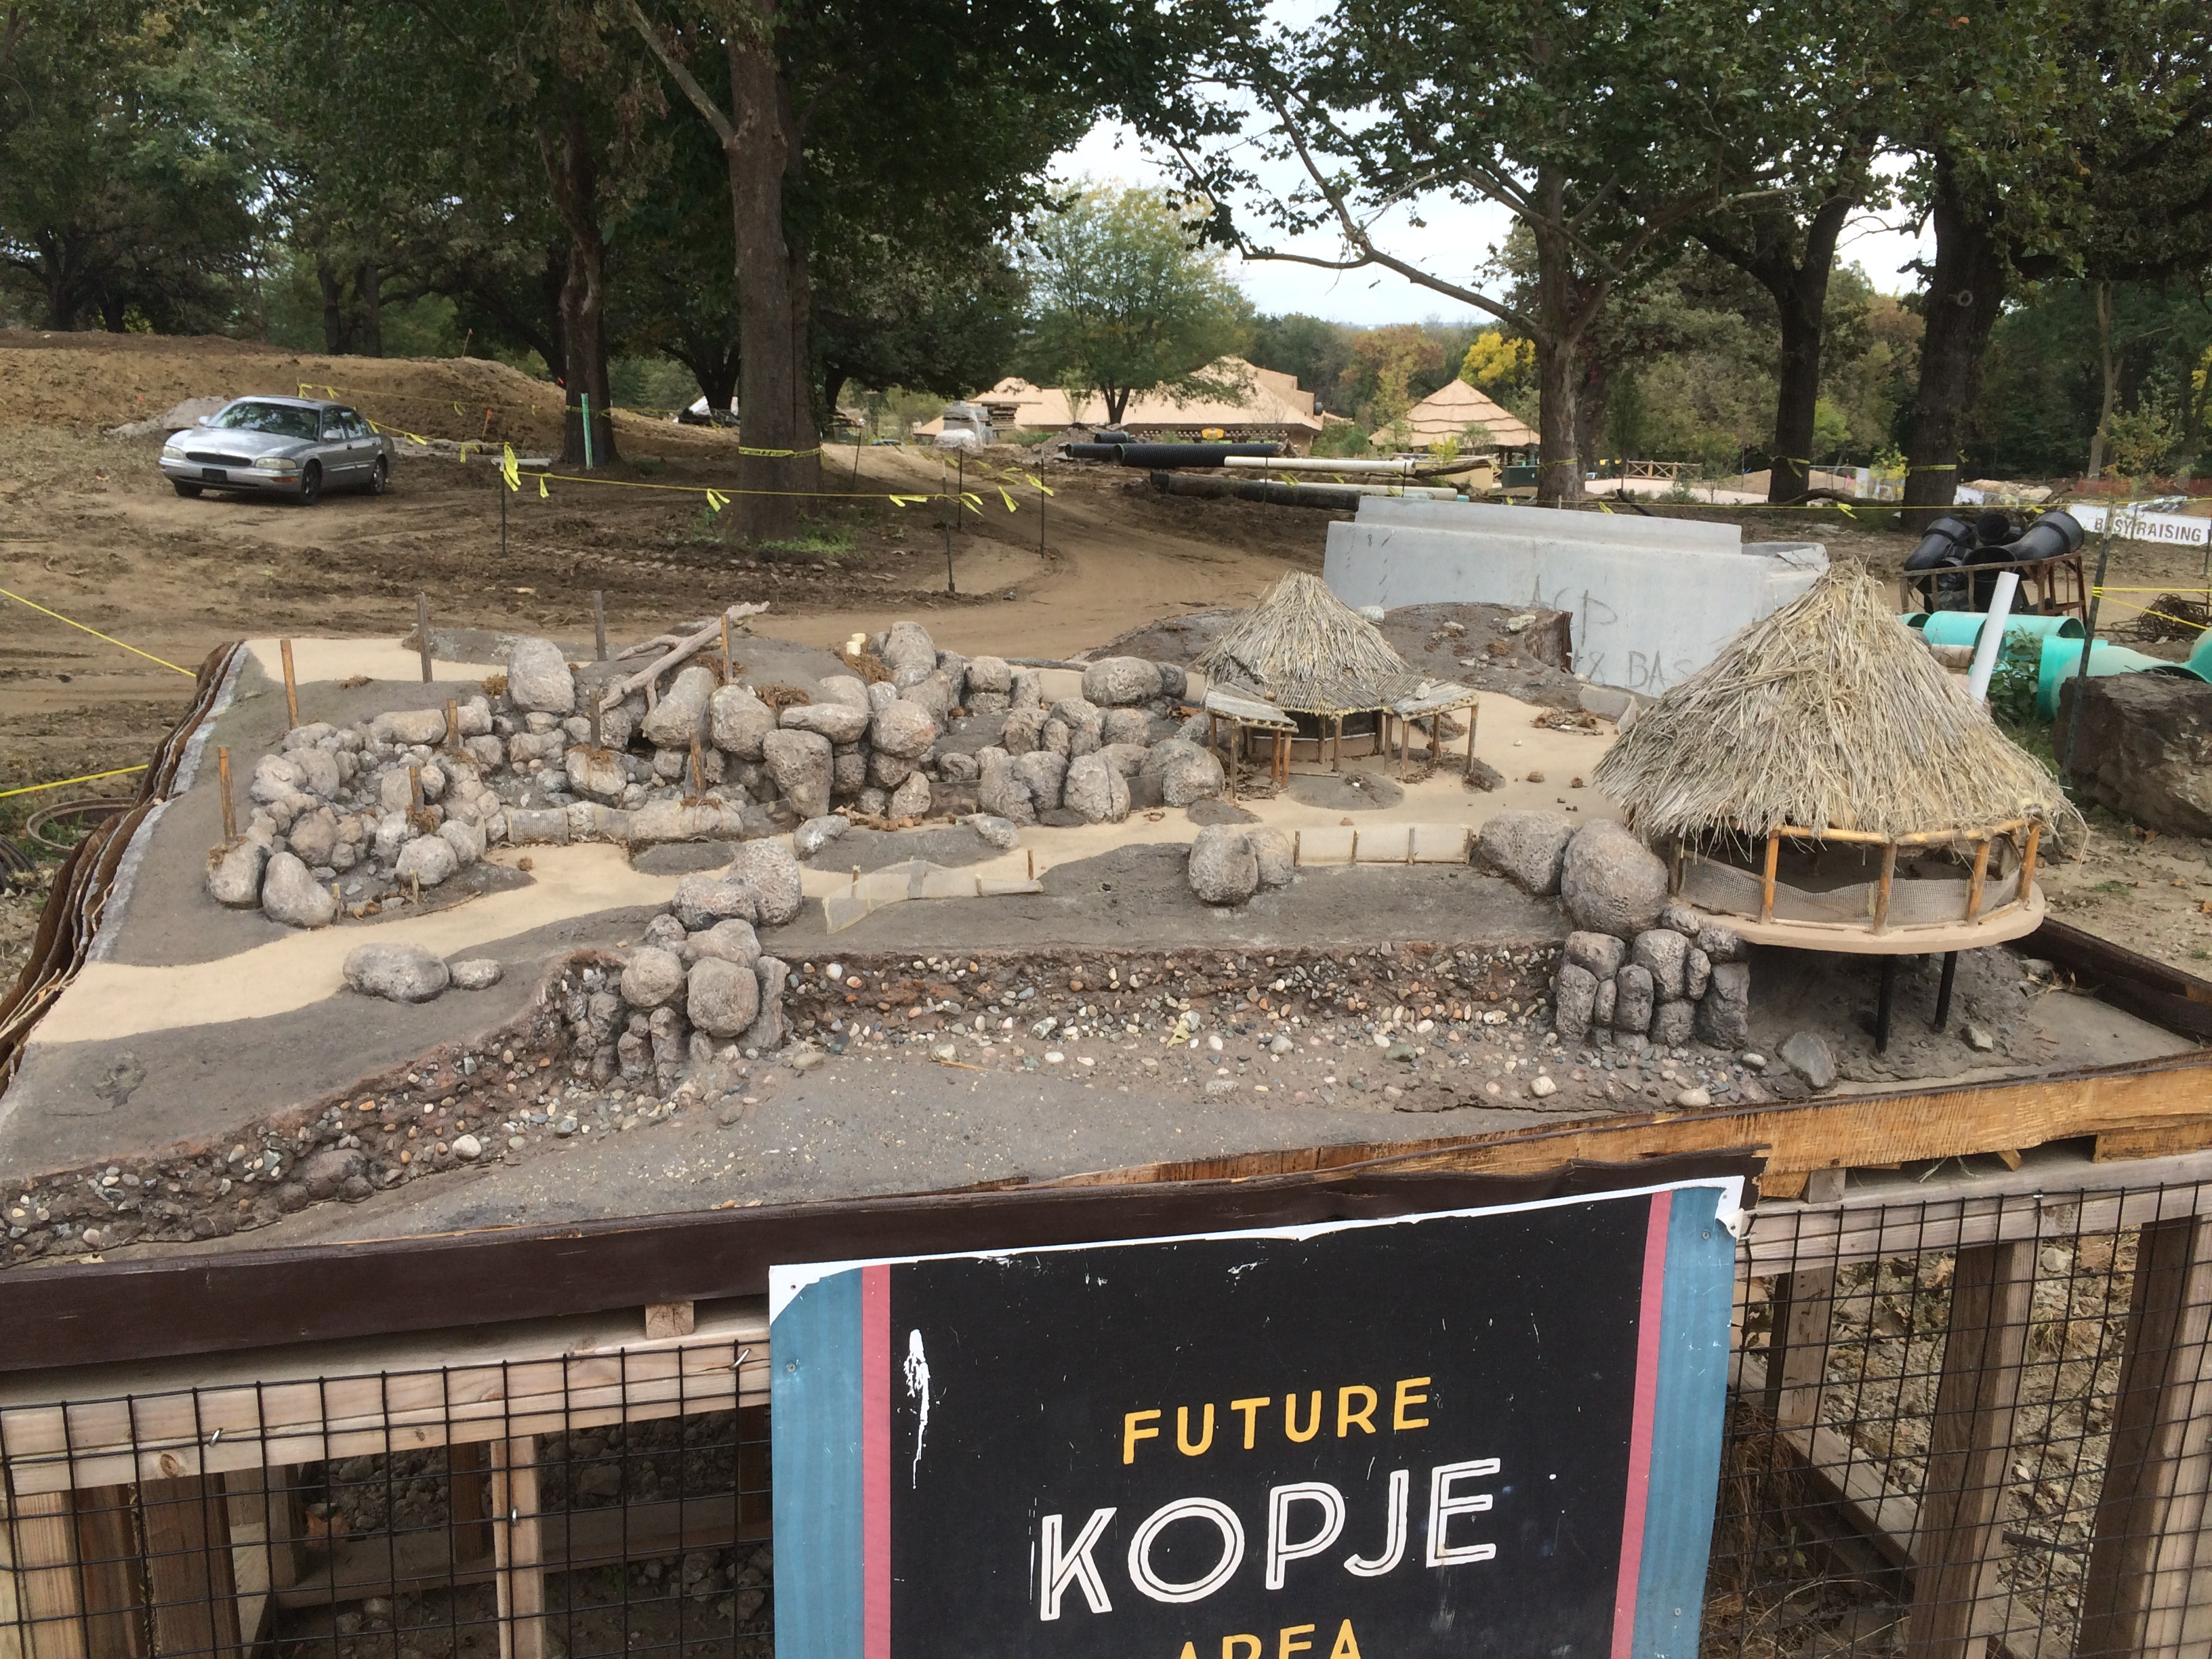 Future Kopje Area Model - African Grasslands, Henry Doorly Zoo Omaha Nebraska